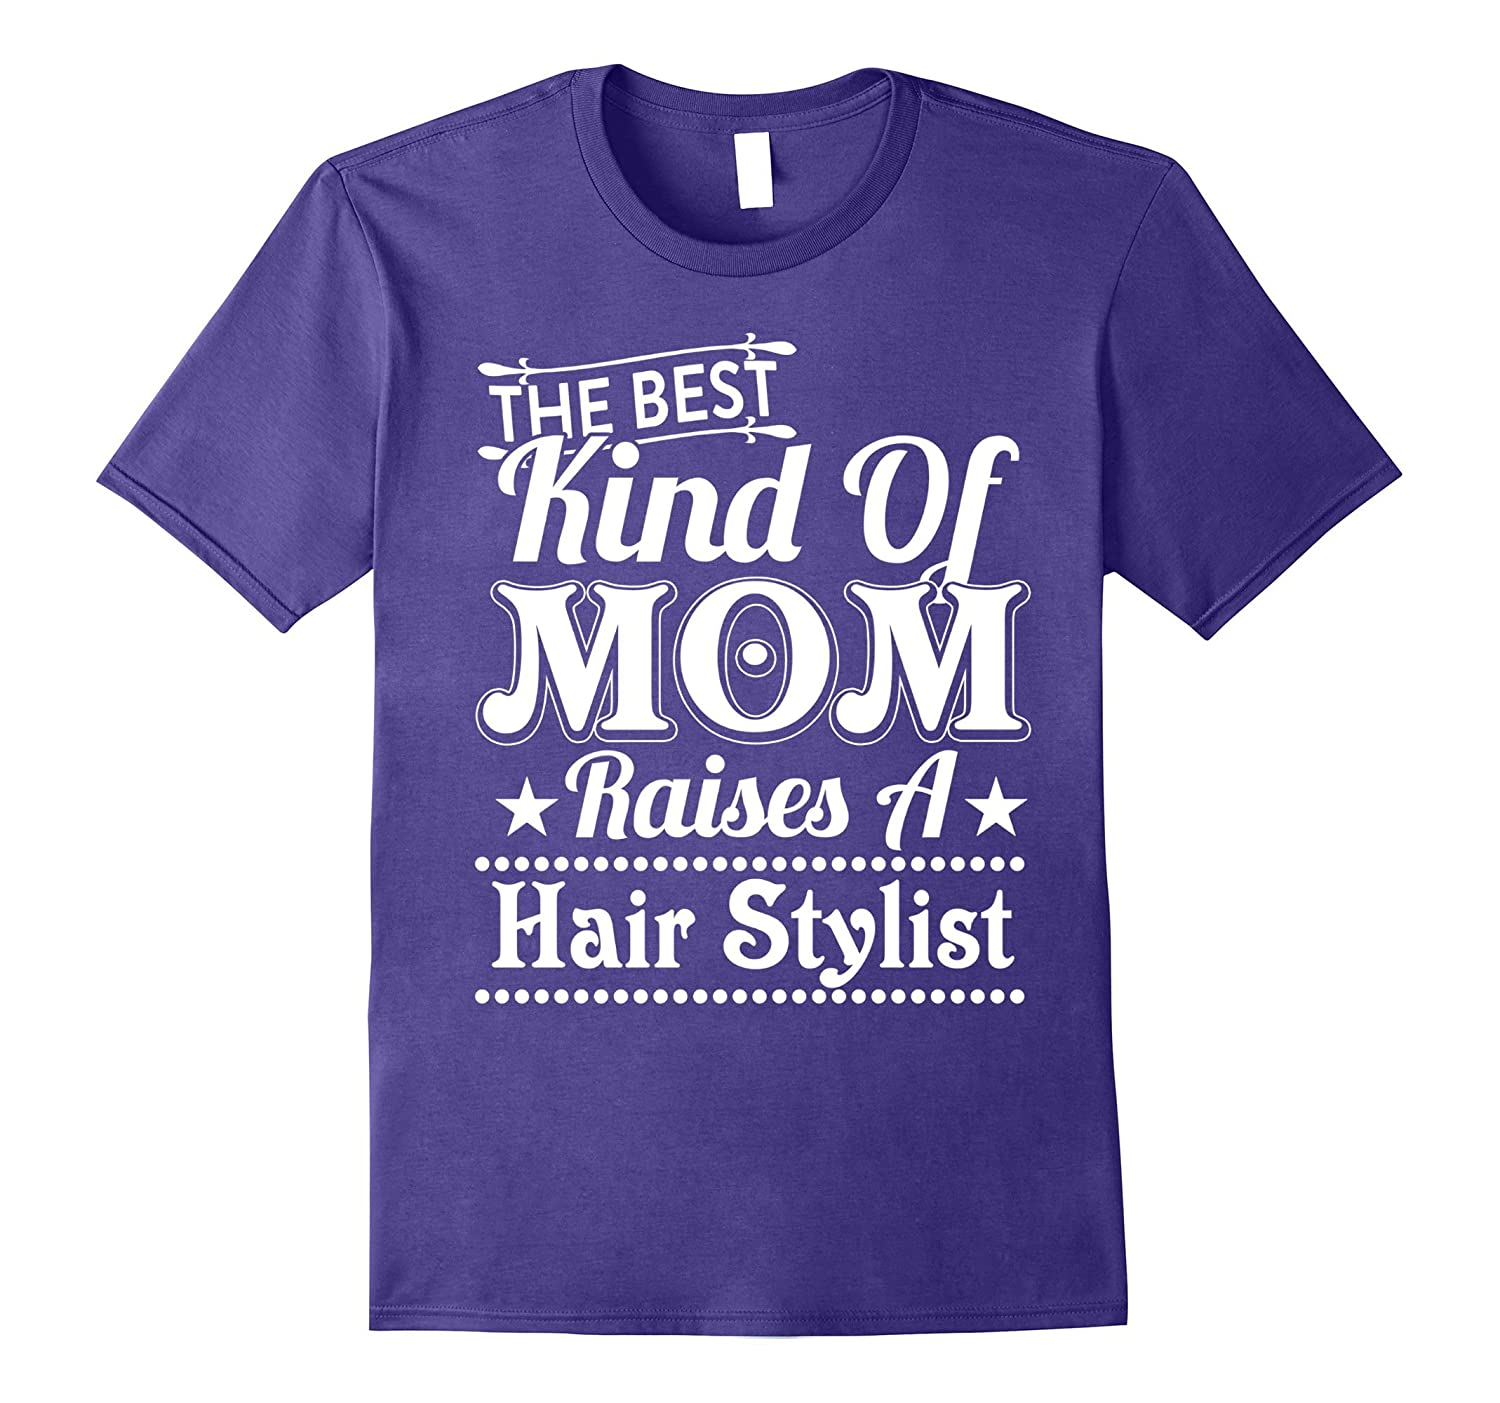 The Best Kind Of Mom Raises A Hairstylist T-shirt Womens-Vaci